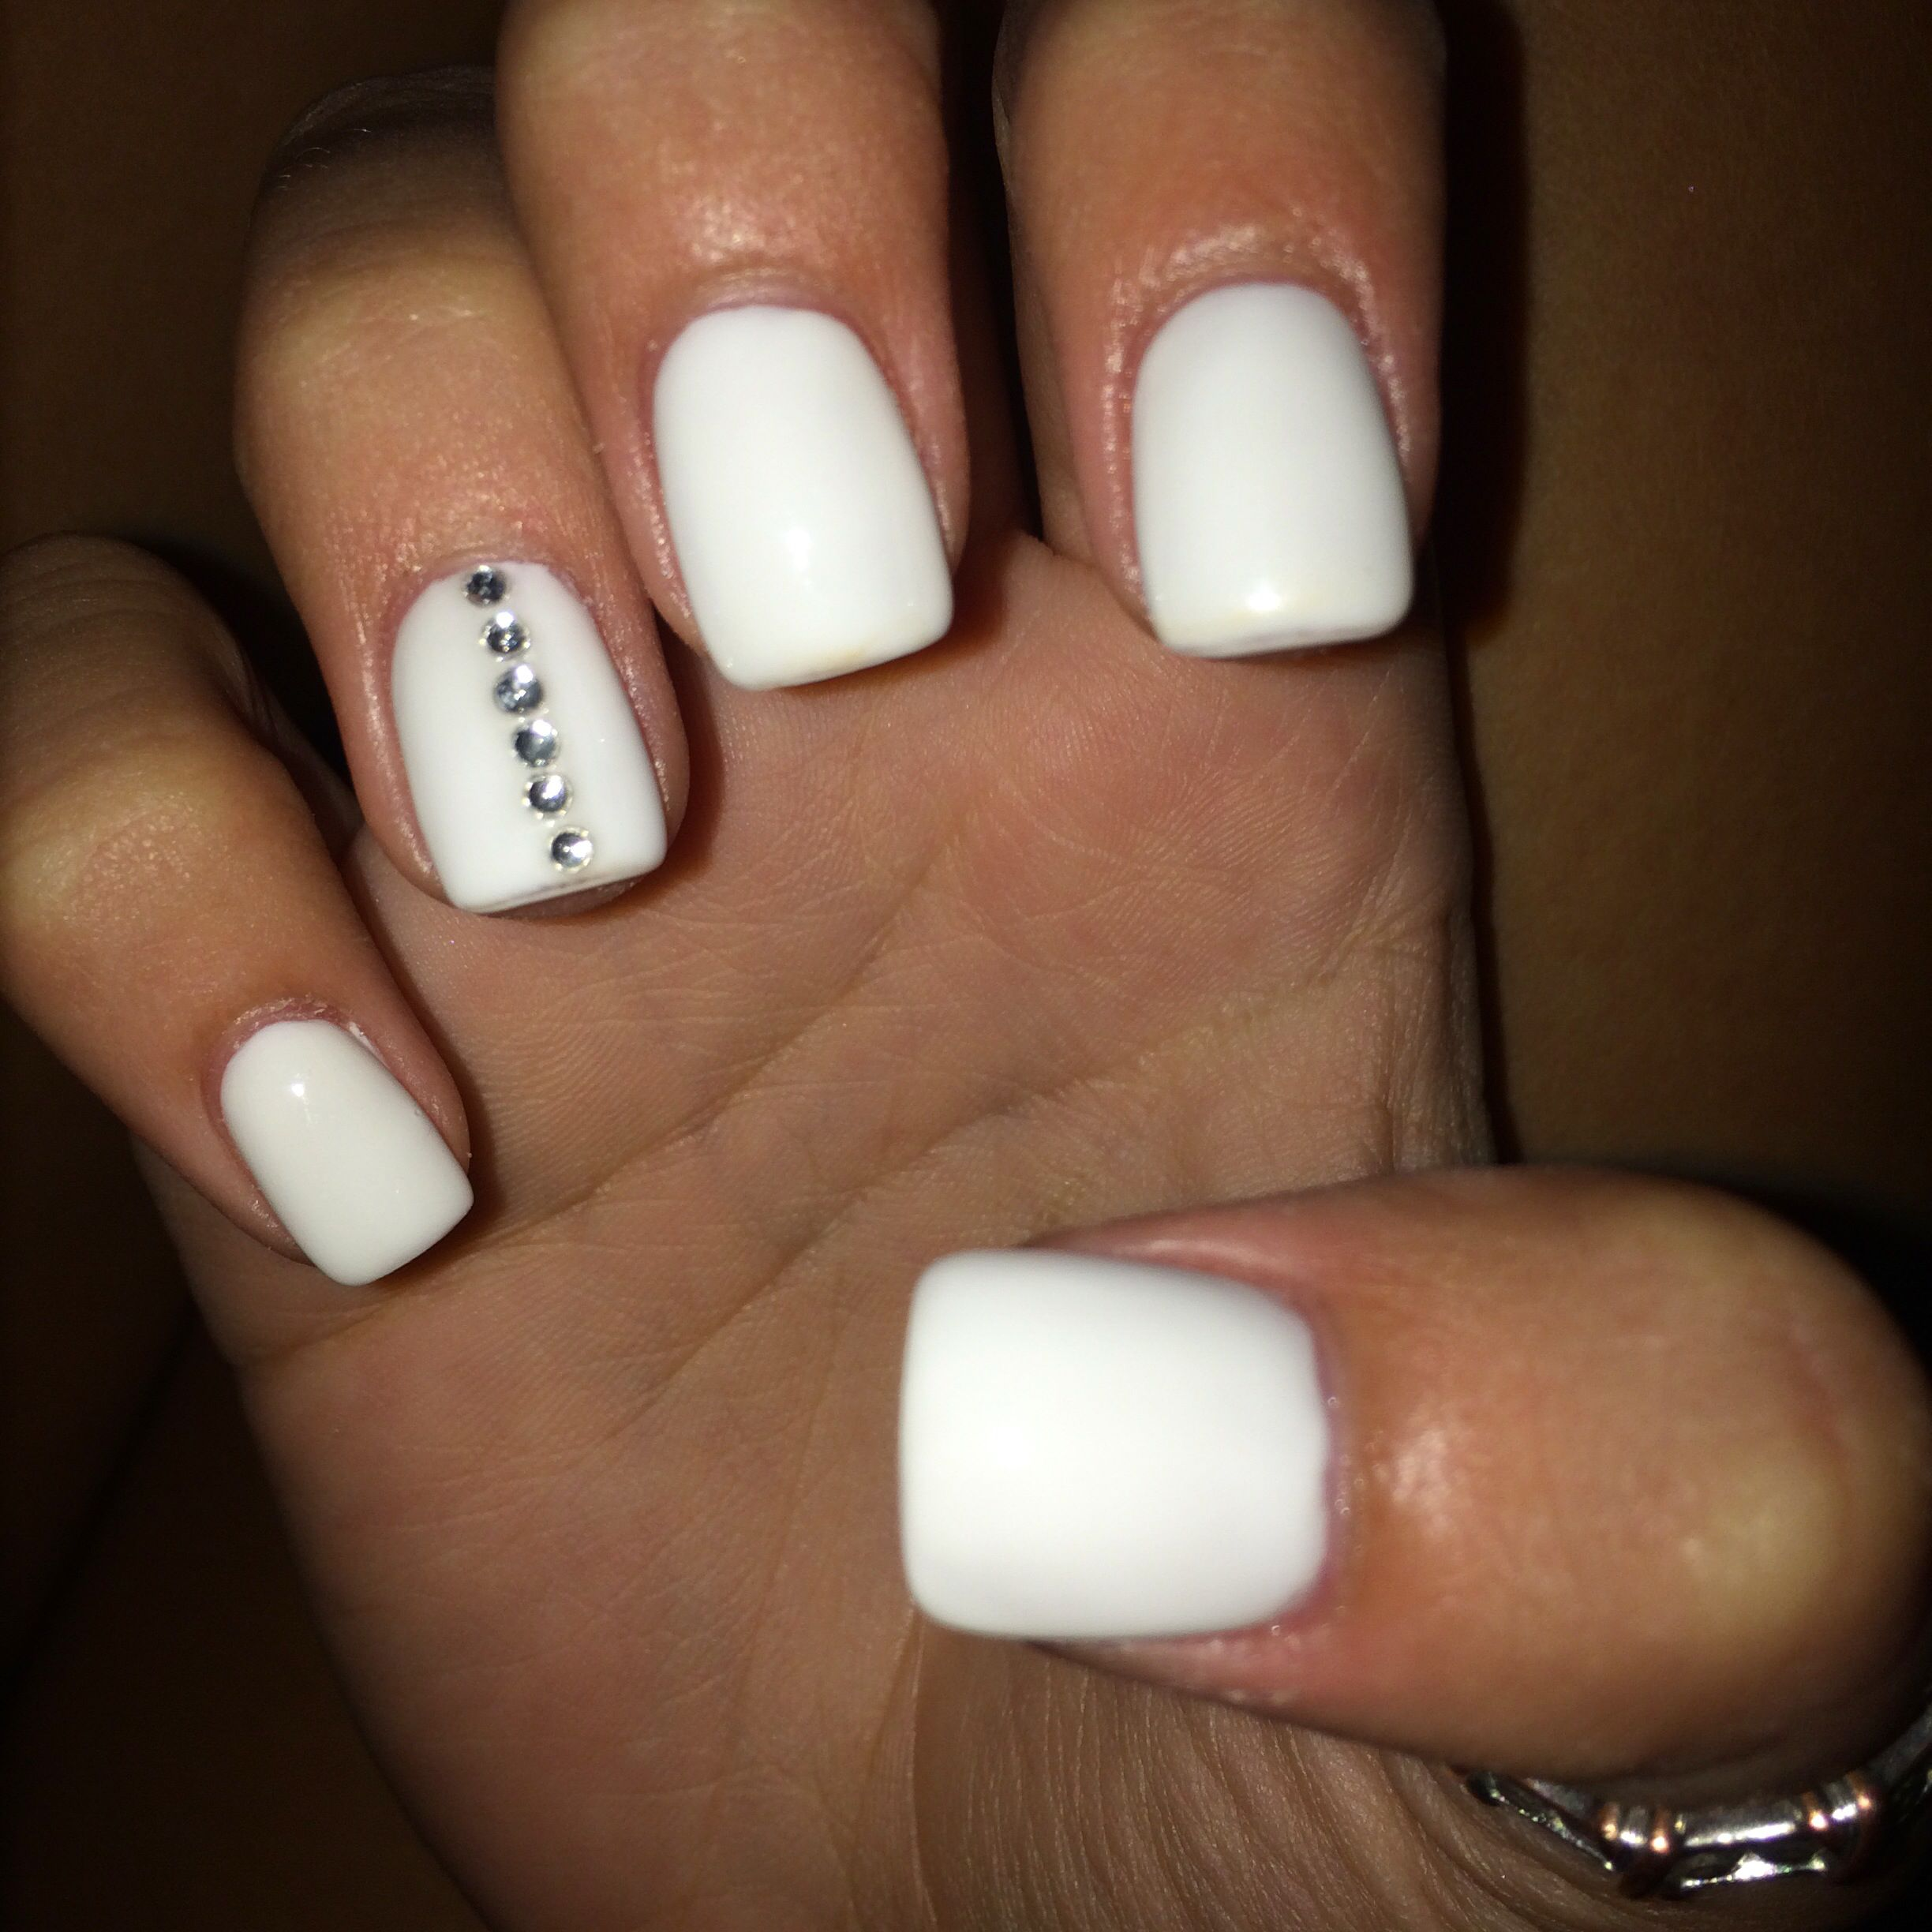 Cute White Acrylics With Gem Design Nail Tip Designs Nail Designs White Nails